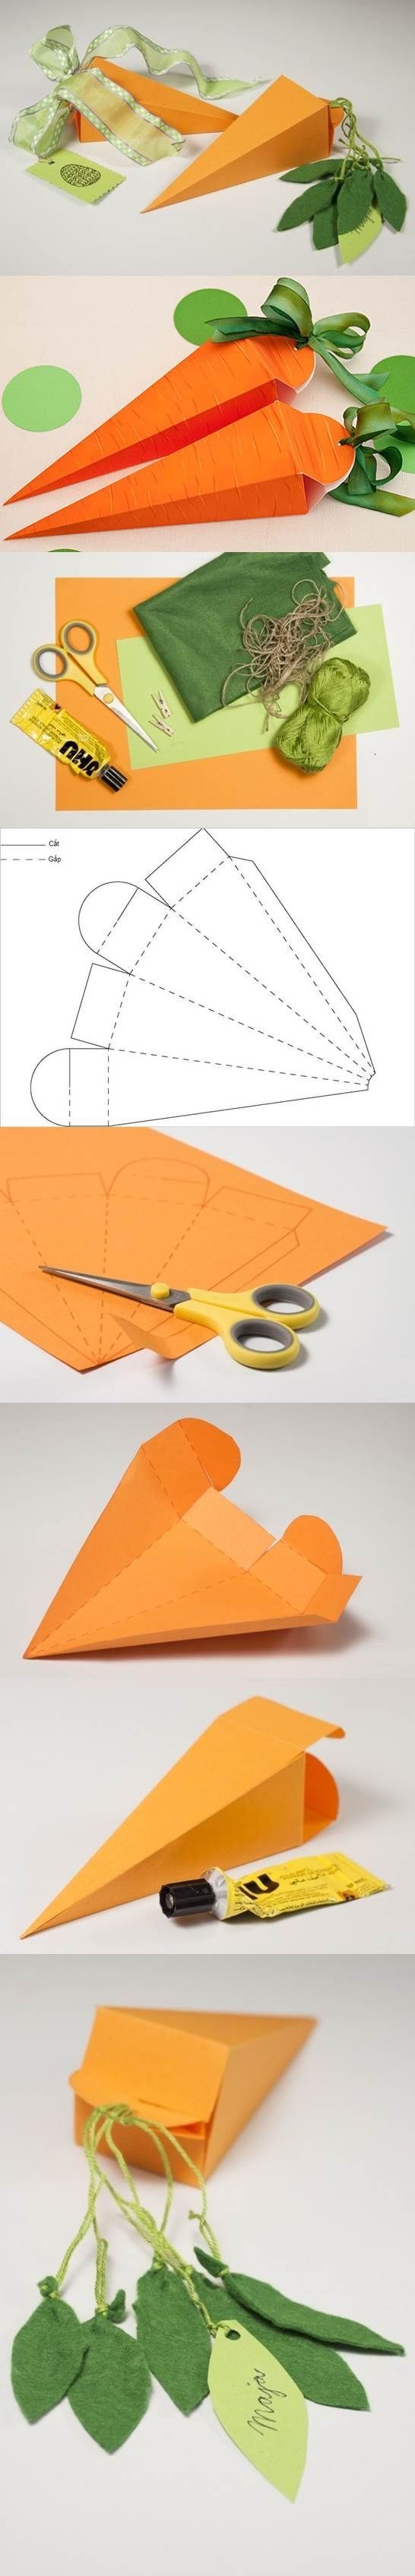 How To Make A Carrot Gift Box Pictures, Photos, and Images ...